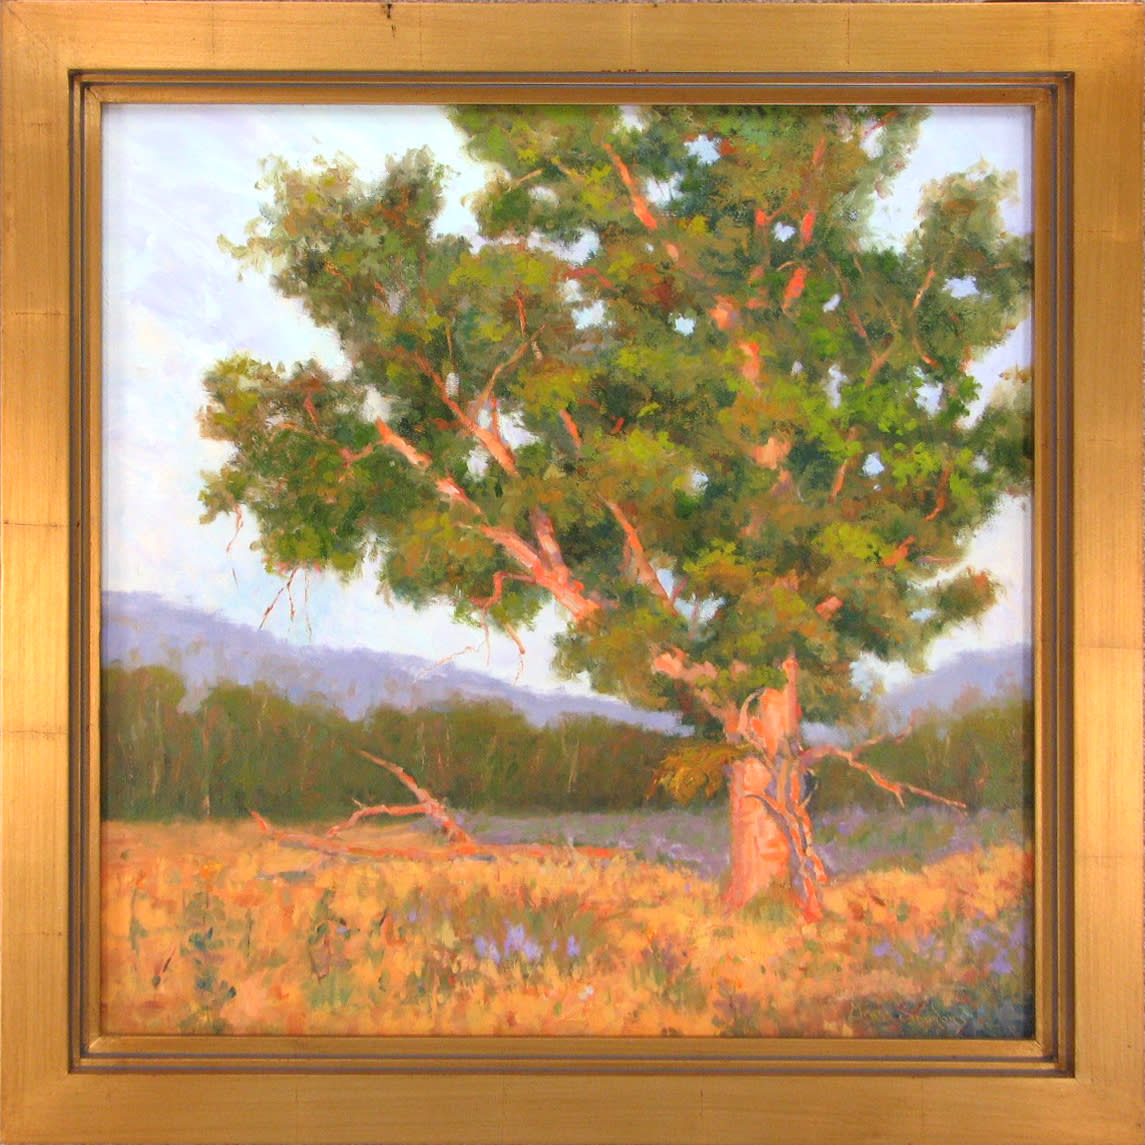 Virginia grass simmons   her dress turns yellow in the fall   oil   24 x 24   1250 ghgfnw